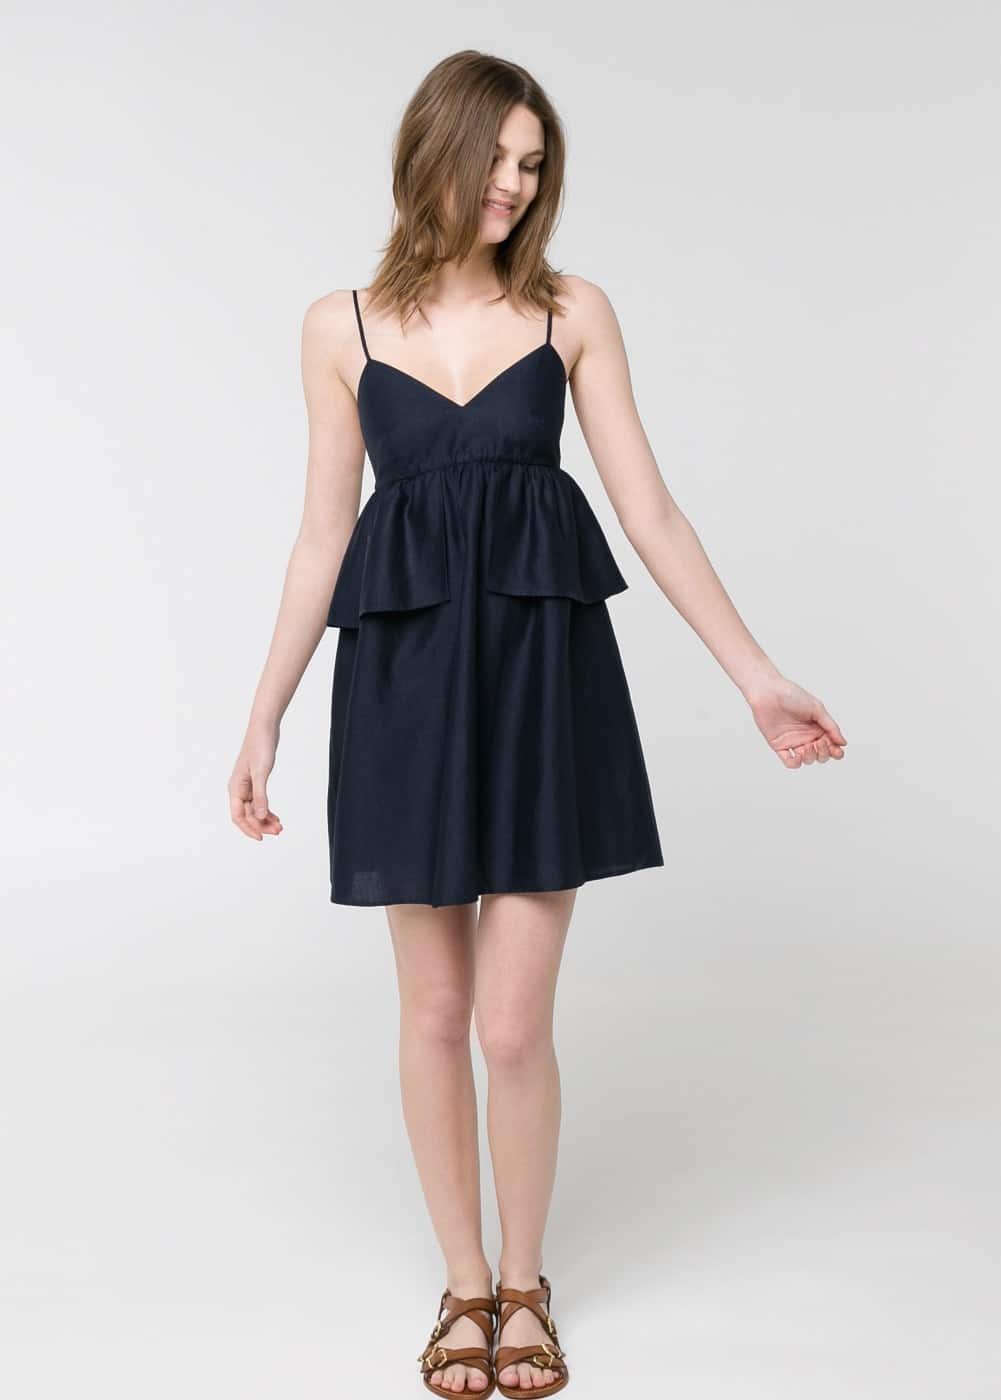 Ruffled strap dress